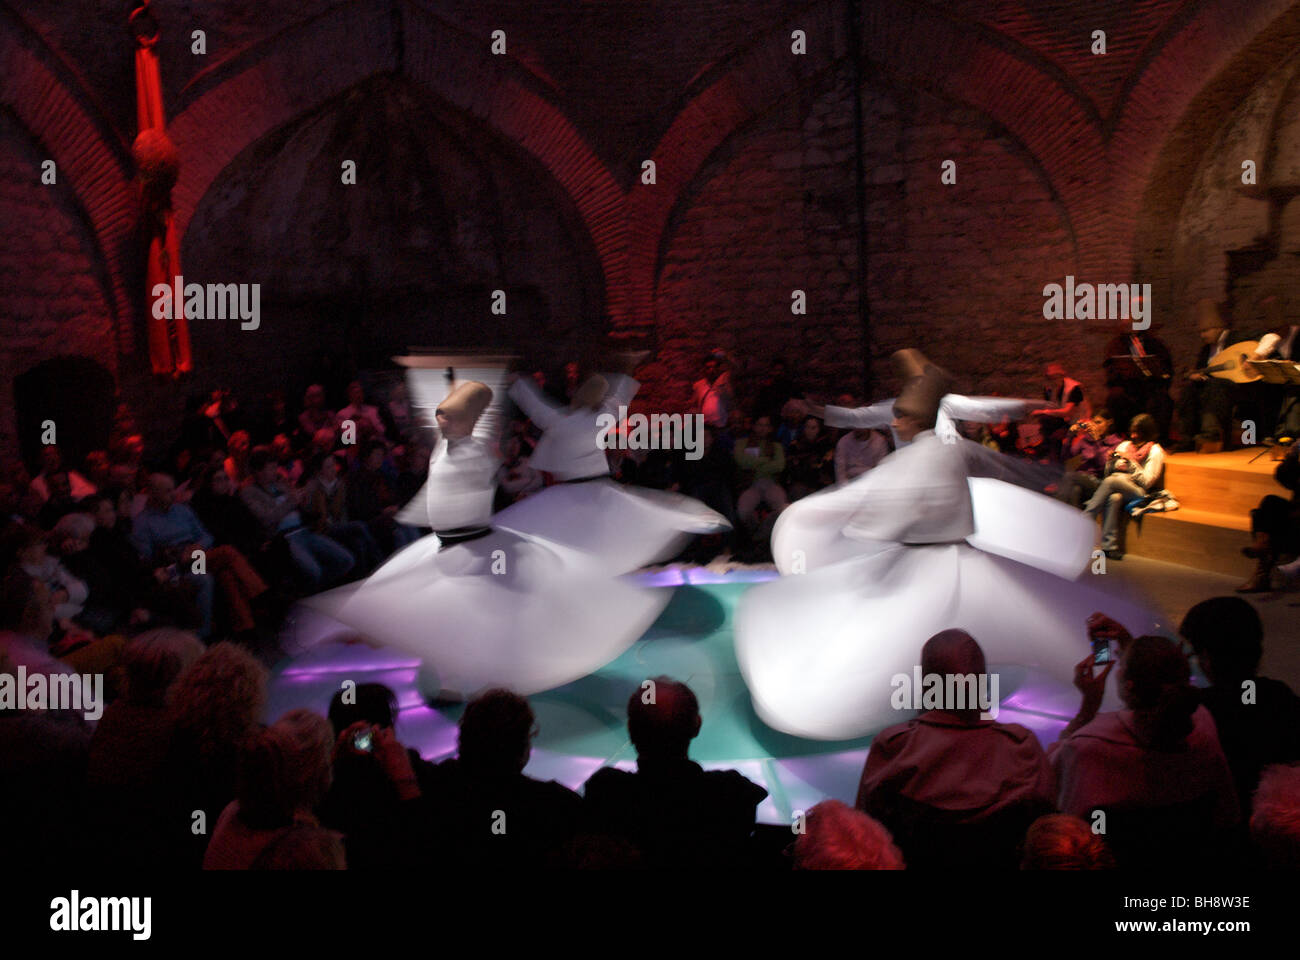 Members of the Sufi sect become trance like in Meditation as Whirling Dervishes, Sultanahmet, Istanbul, Turkey - Stock Image